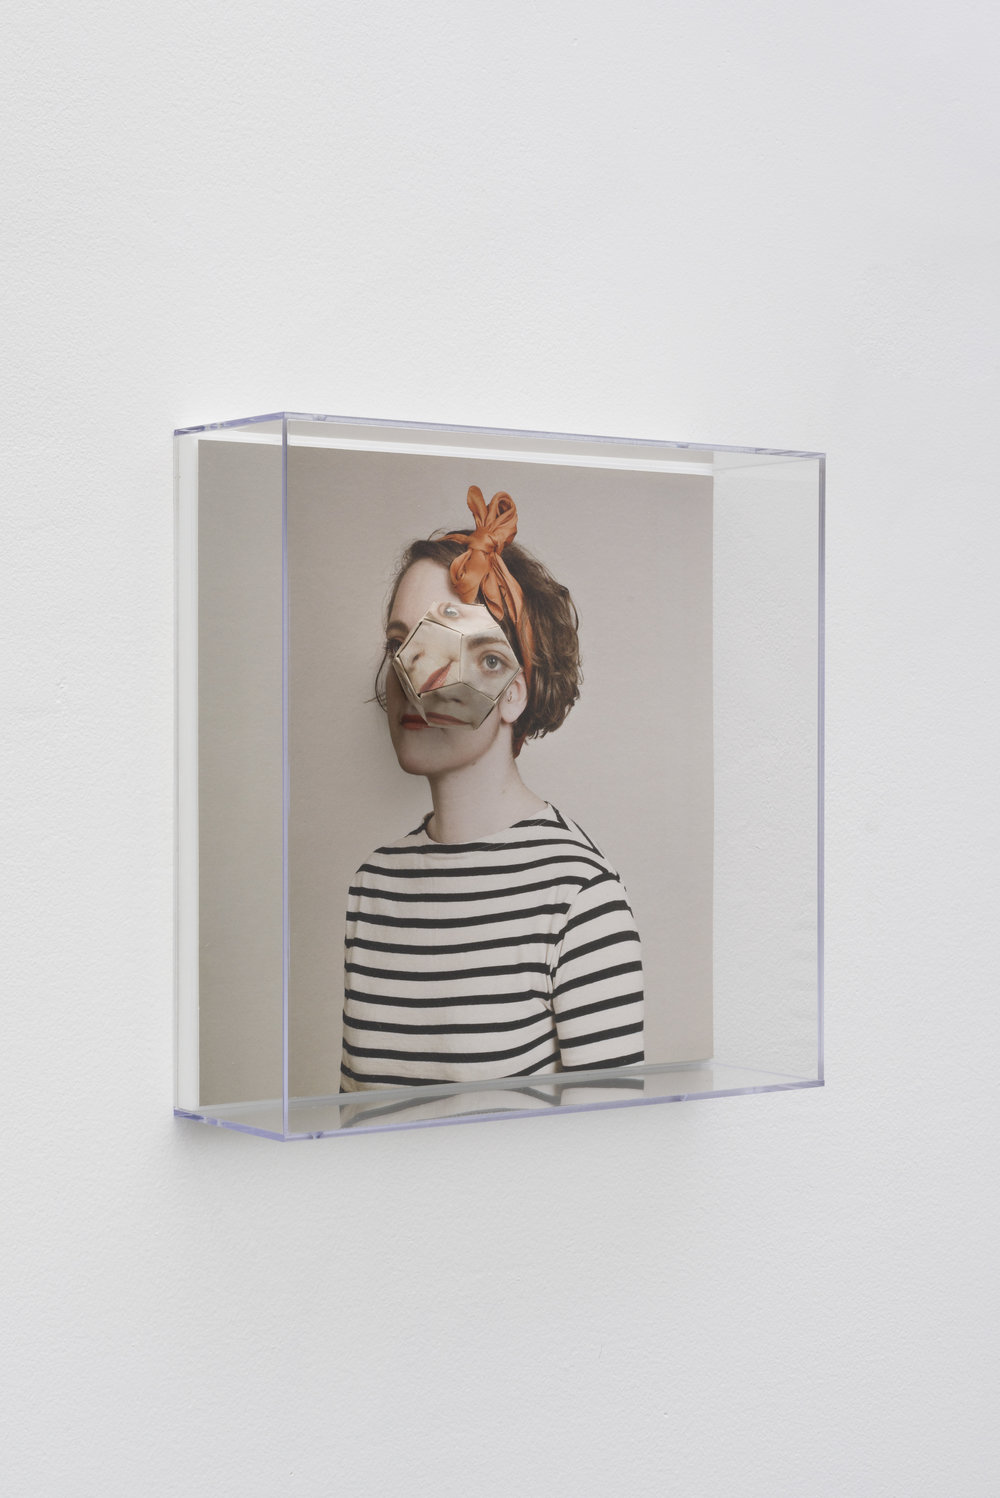 Alma Haser,  Patient No. 1 HD (Lottie) , 2016  Digital pigment print with folded digital pigment print sculpture, plexiglass box, 30 x 30 x 10 cm (approx. 12 x 12 x 4 in), edition of 5   Inquire